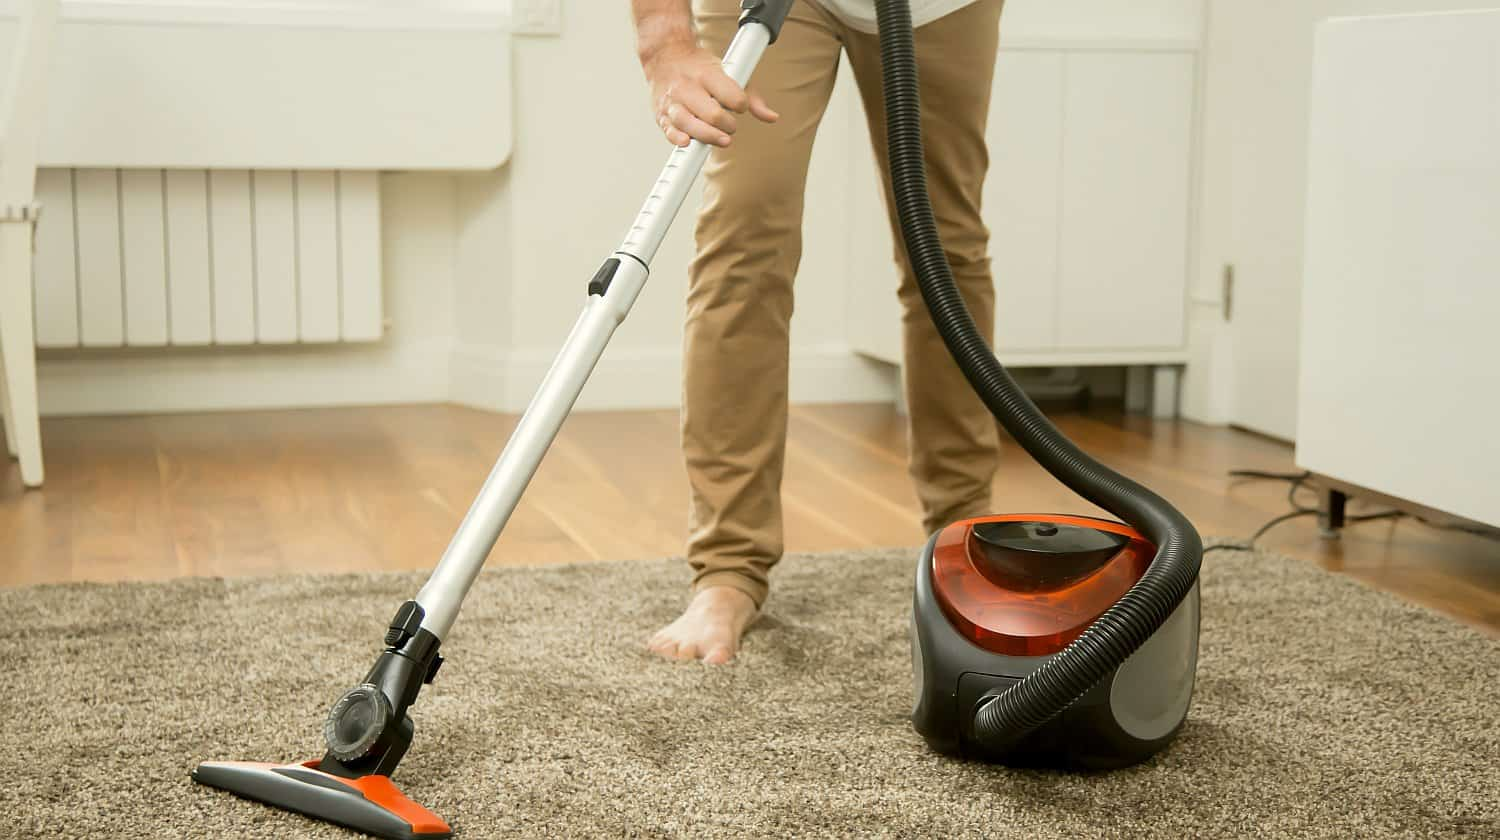 Man Vacuum cleaning the carpet | Top Gadgets To Speed Up Your Spring Cleaning